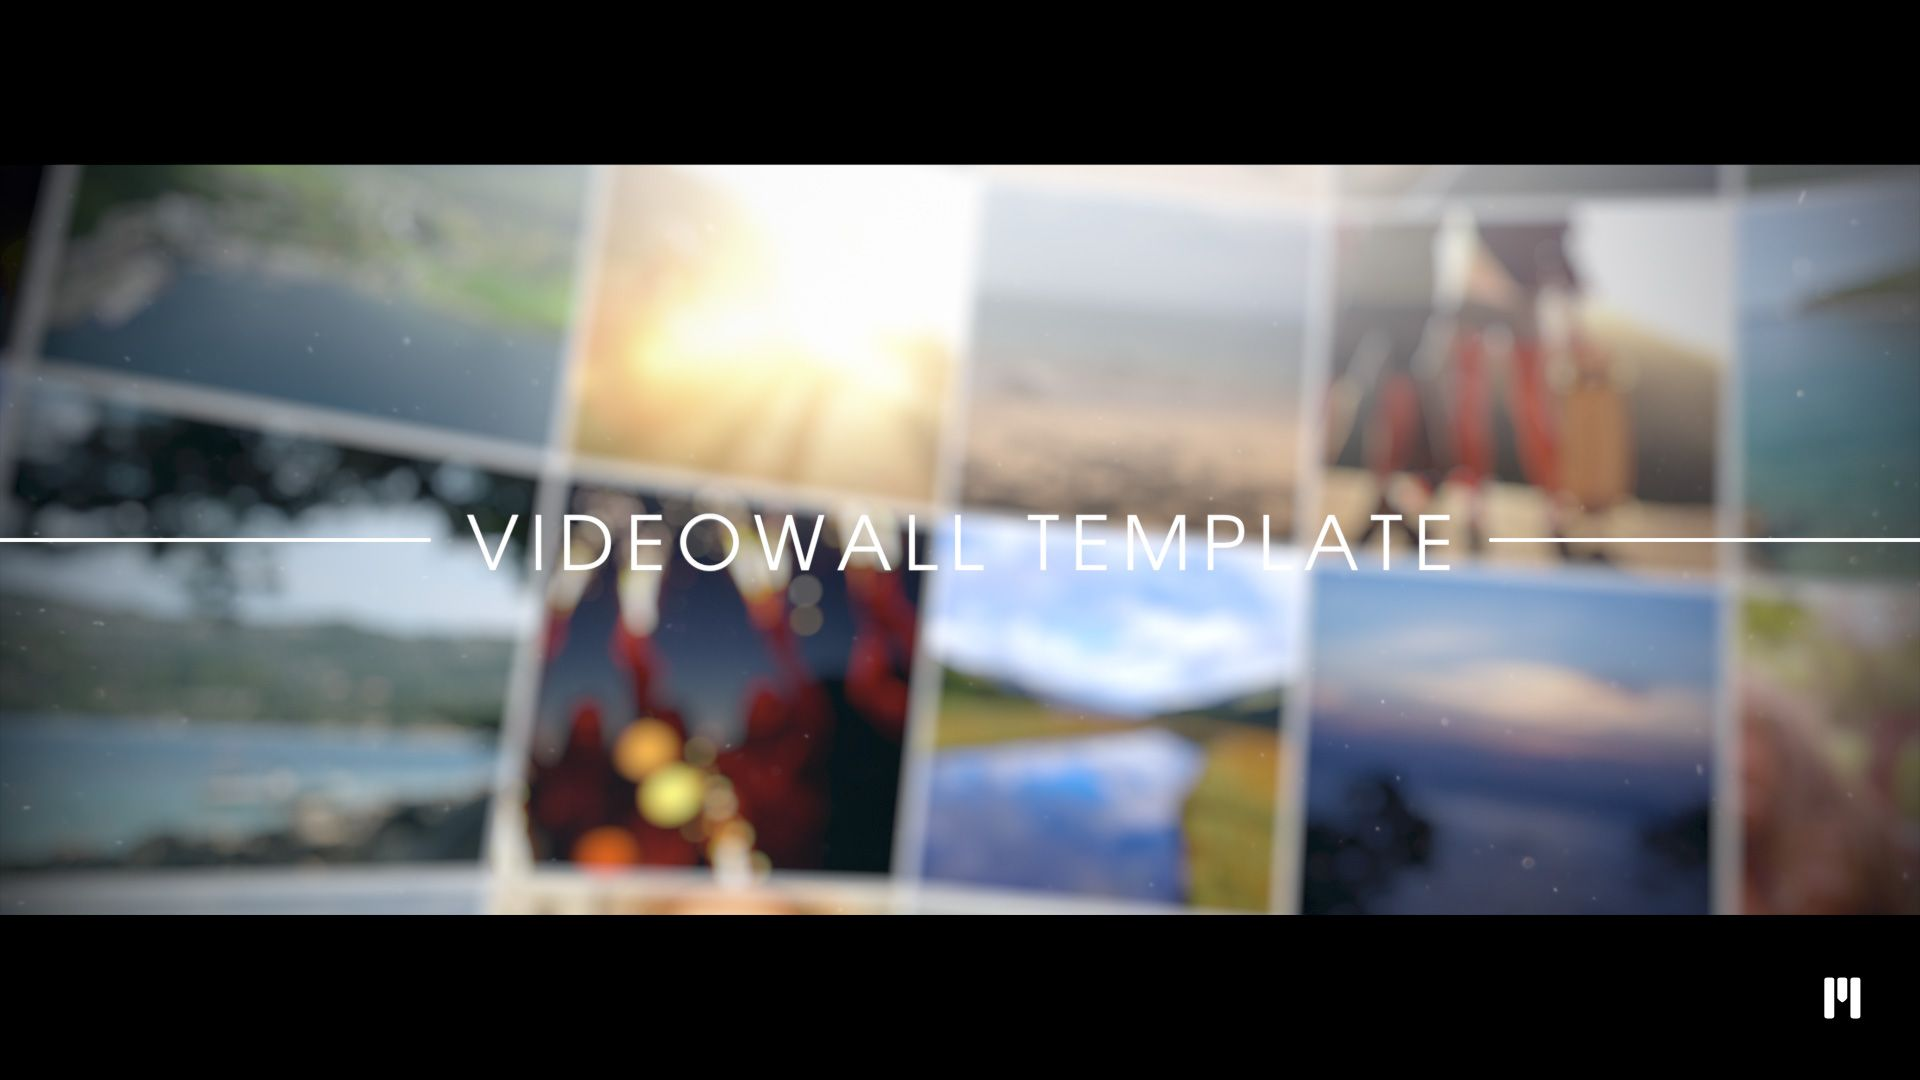 Impressive Videowall Template available!